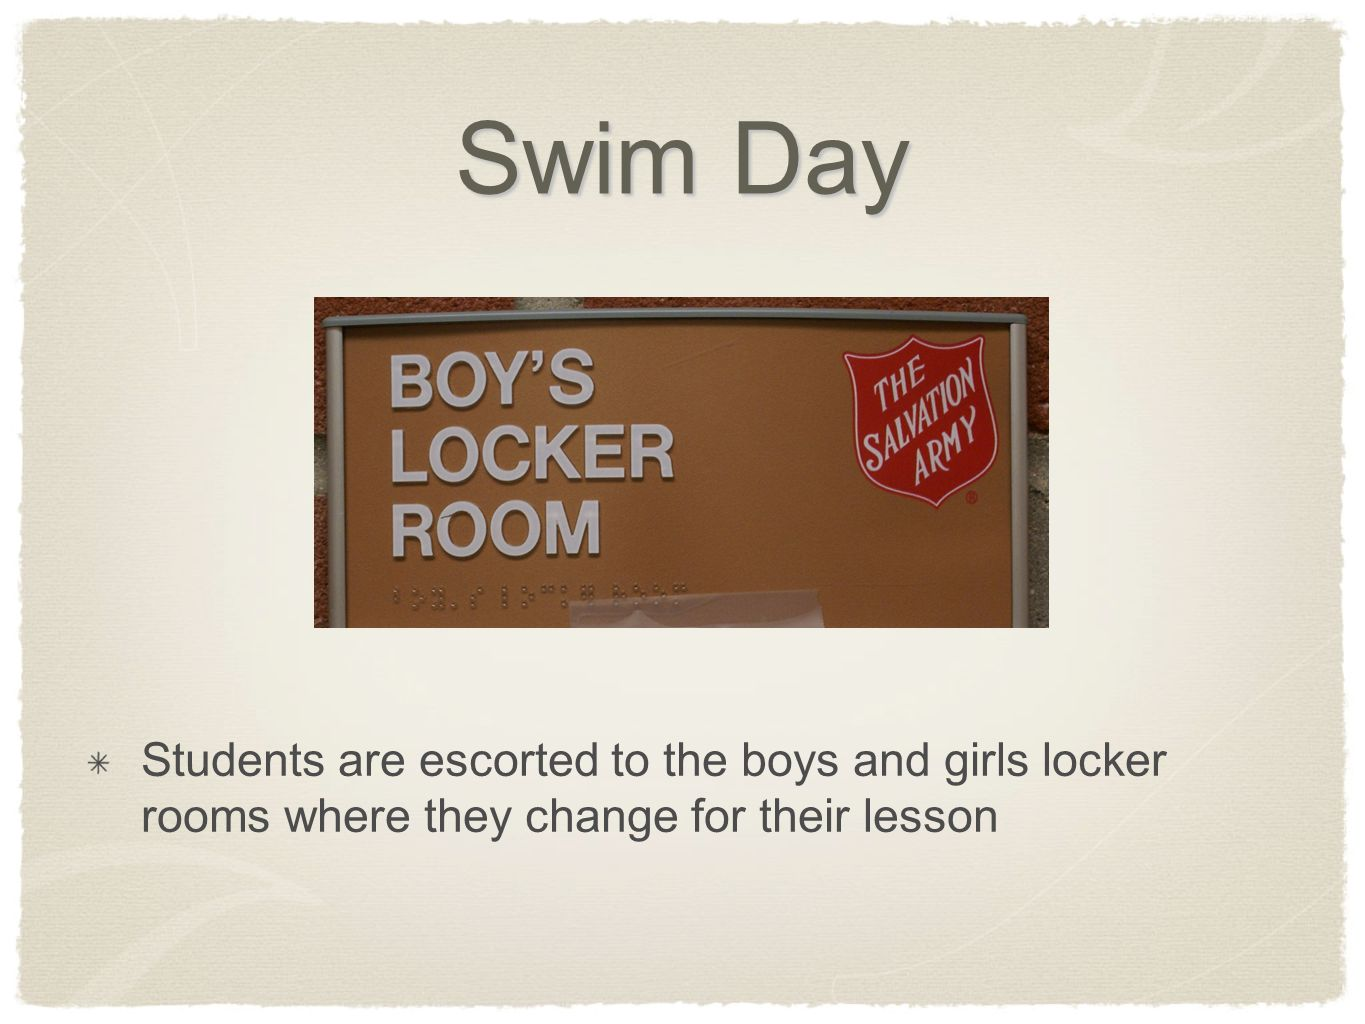 Swim Day Students are escorted to the boys and girls locker rooms where they change for their lesson